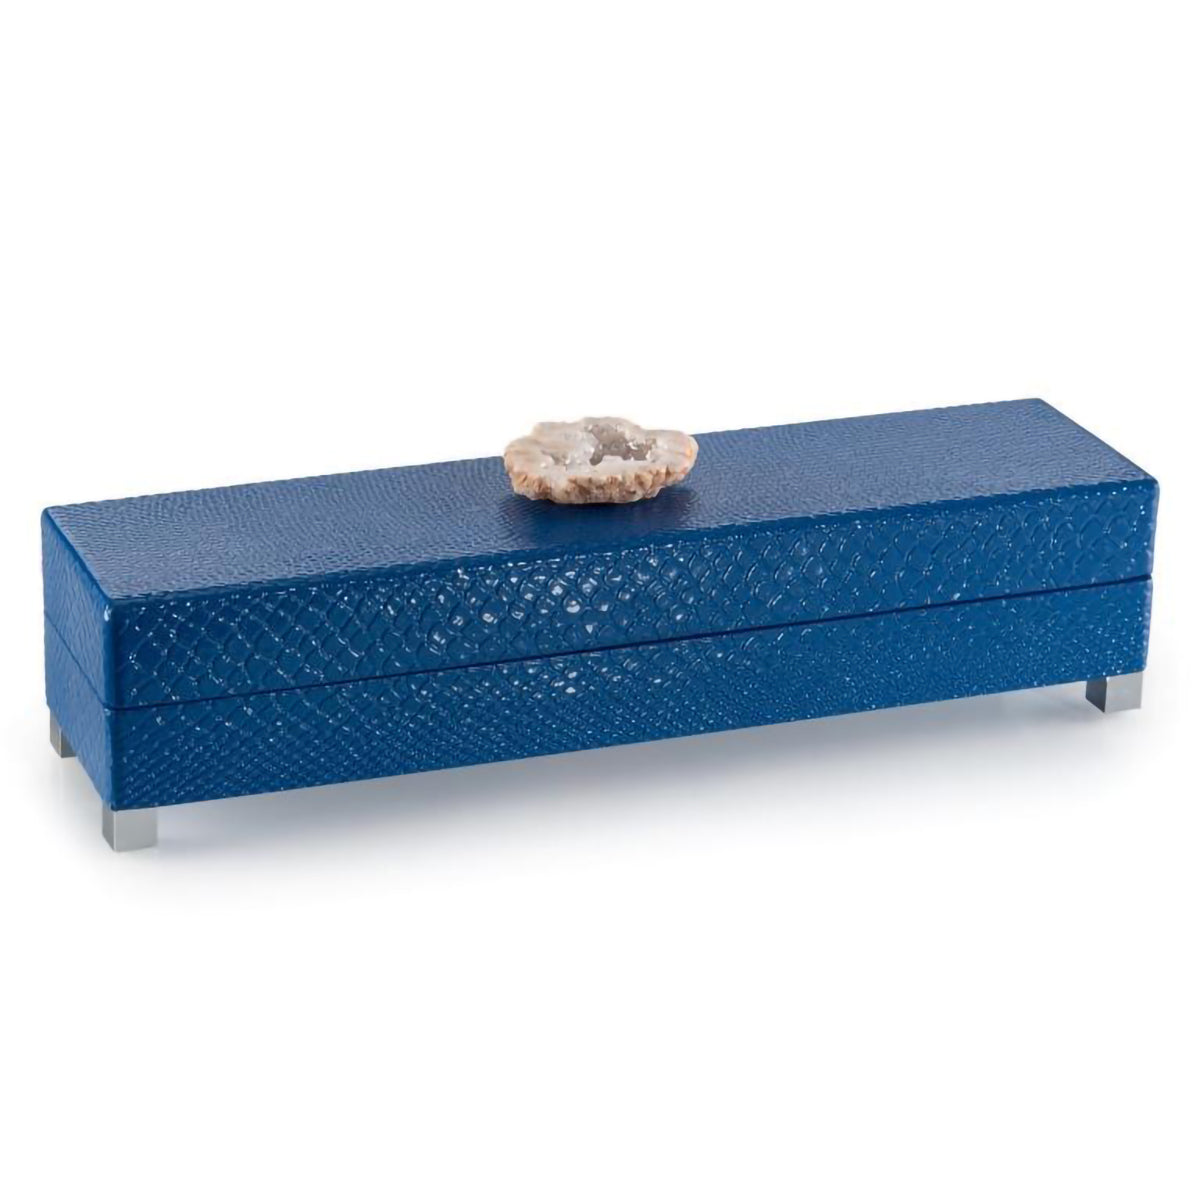 Indigo Embossed Box with Stone Accent